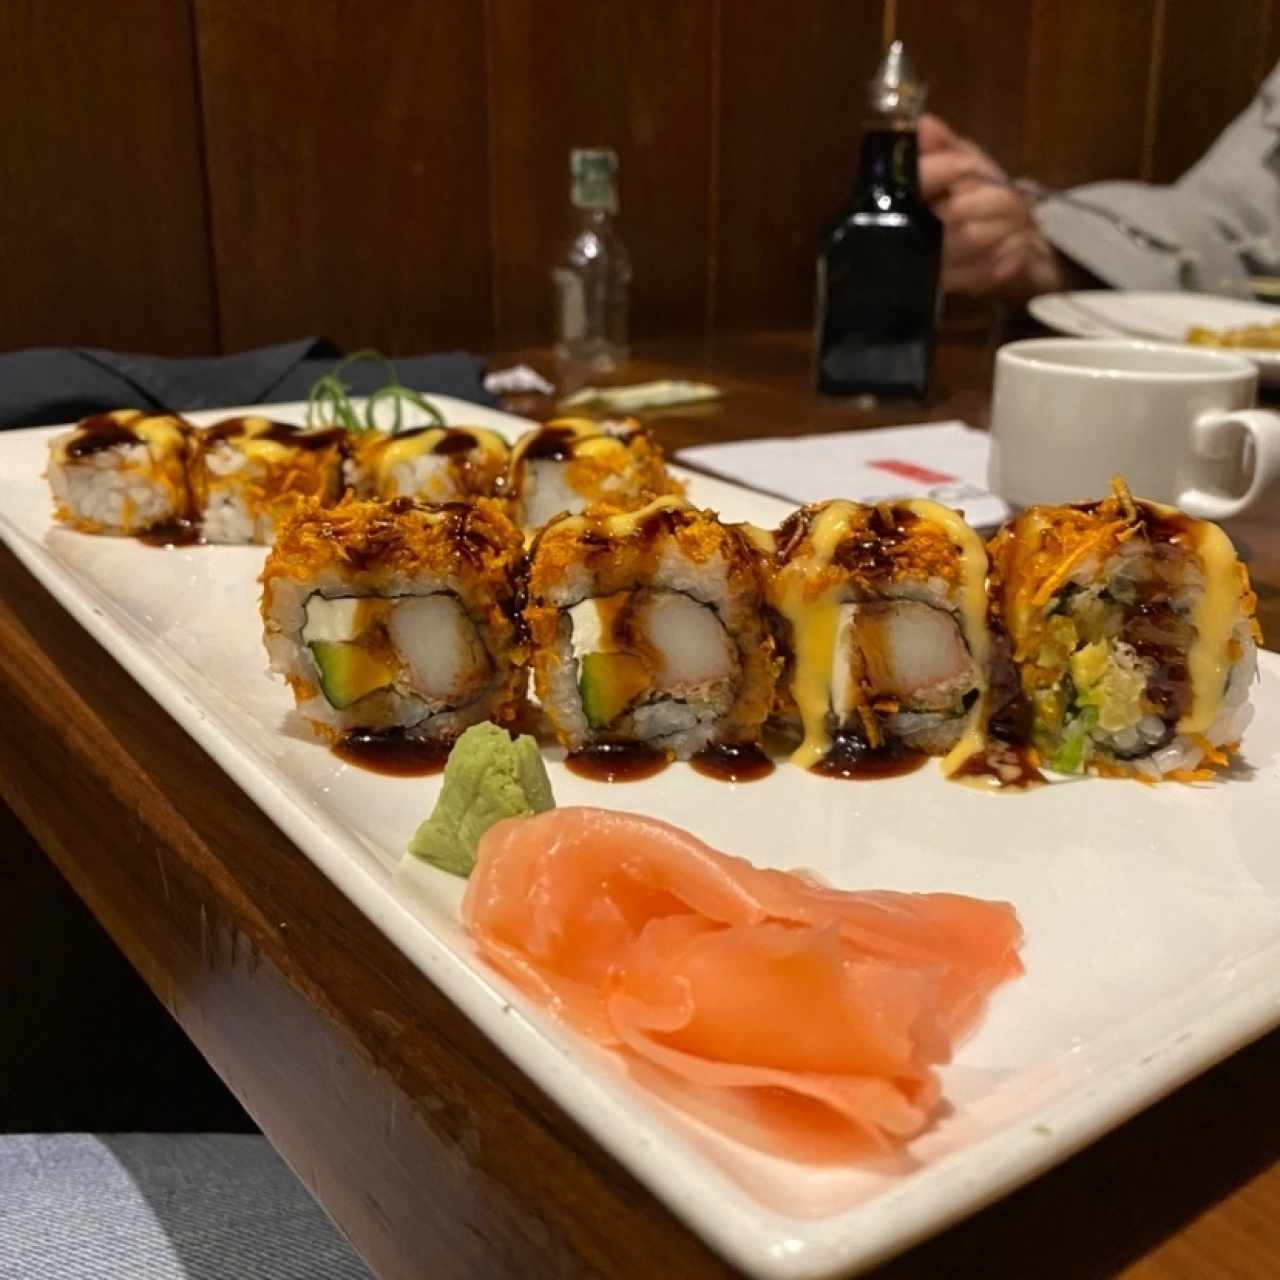 Warrior roll